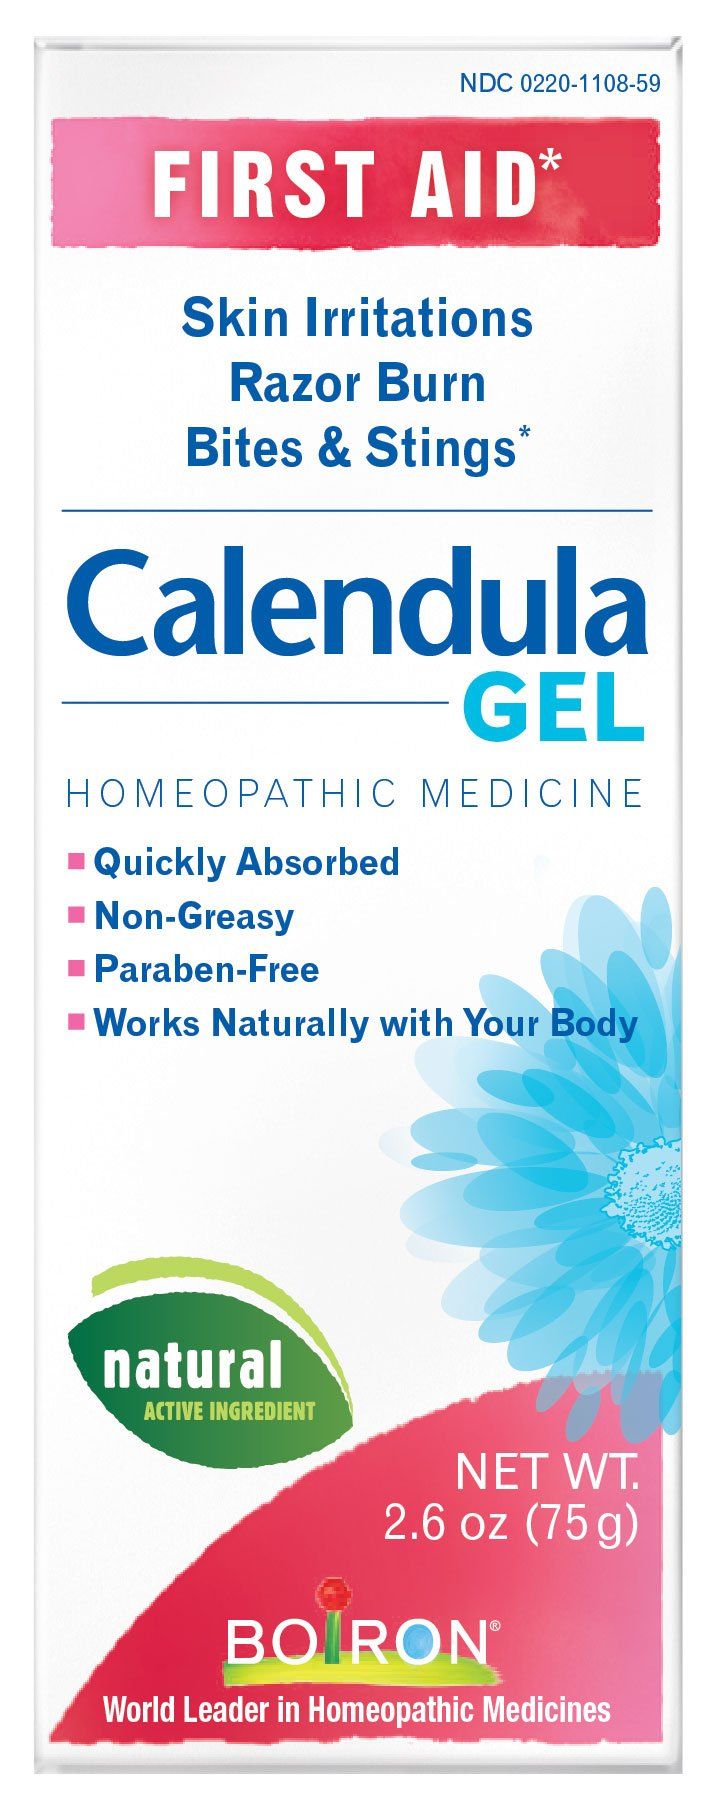 Boiron Calendula Gel, 2.6-Ounce Tubes (Pack of 3), Homeopathic Medicine for Skin Irritation and Burns by Boiron